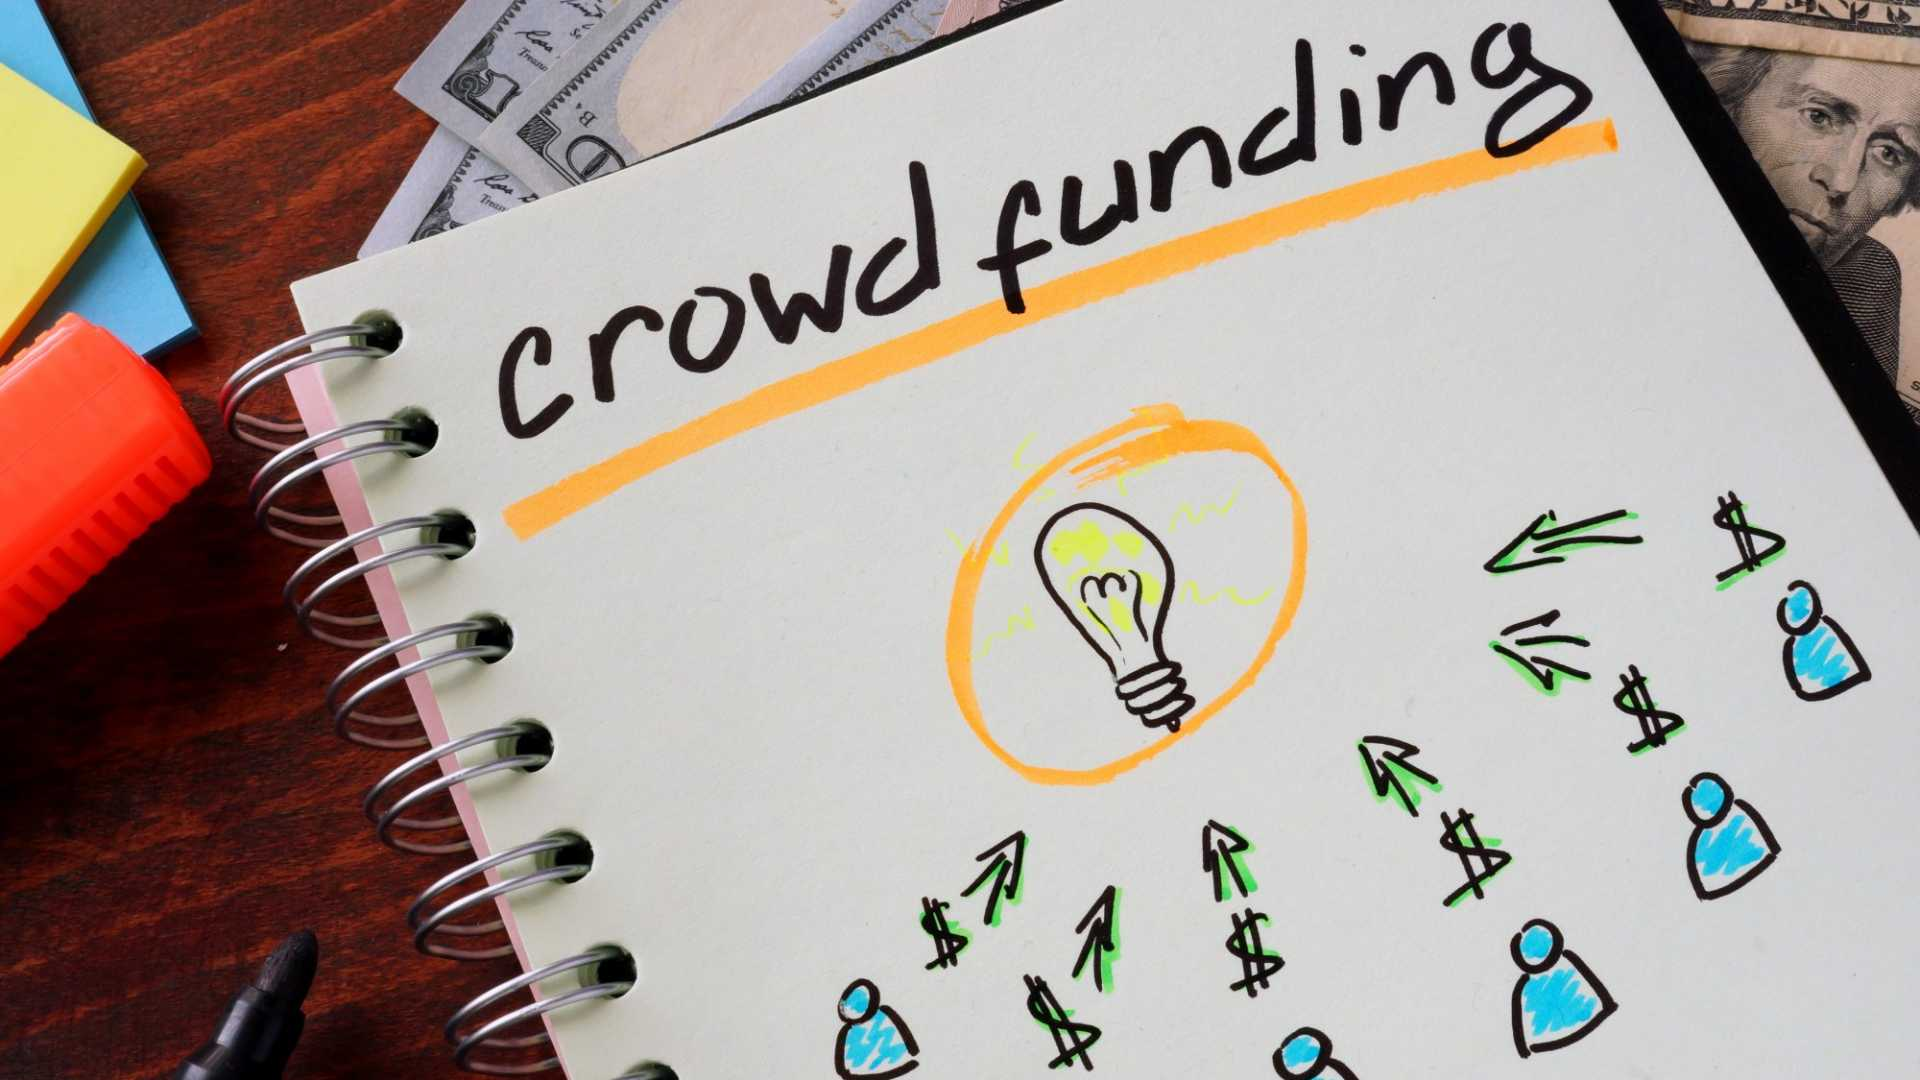 7 Things You Didn't Know About Crowdfunding Your Author Career